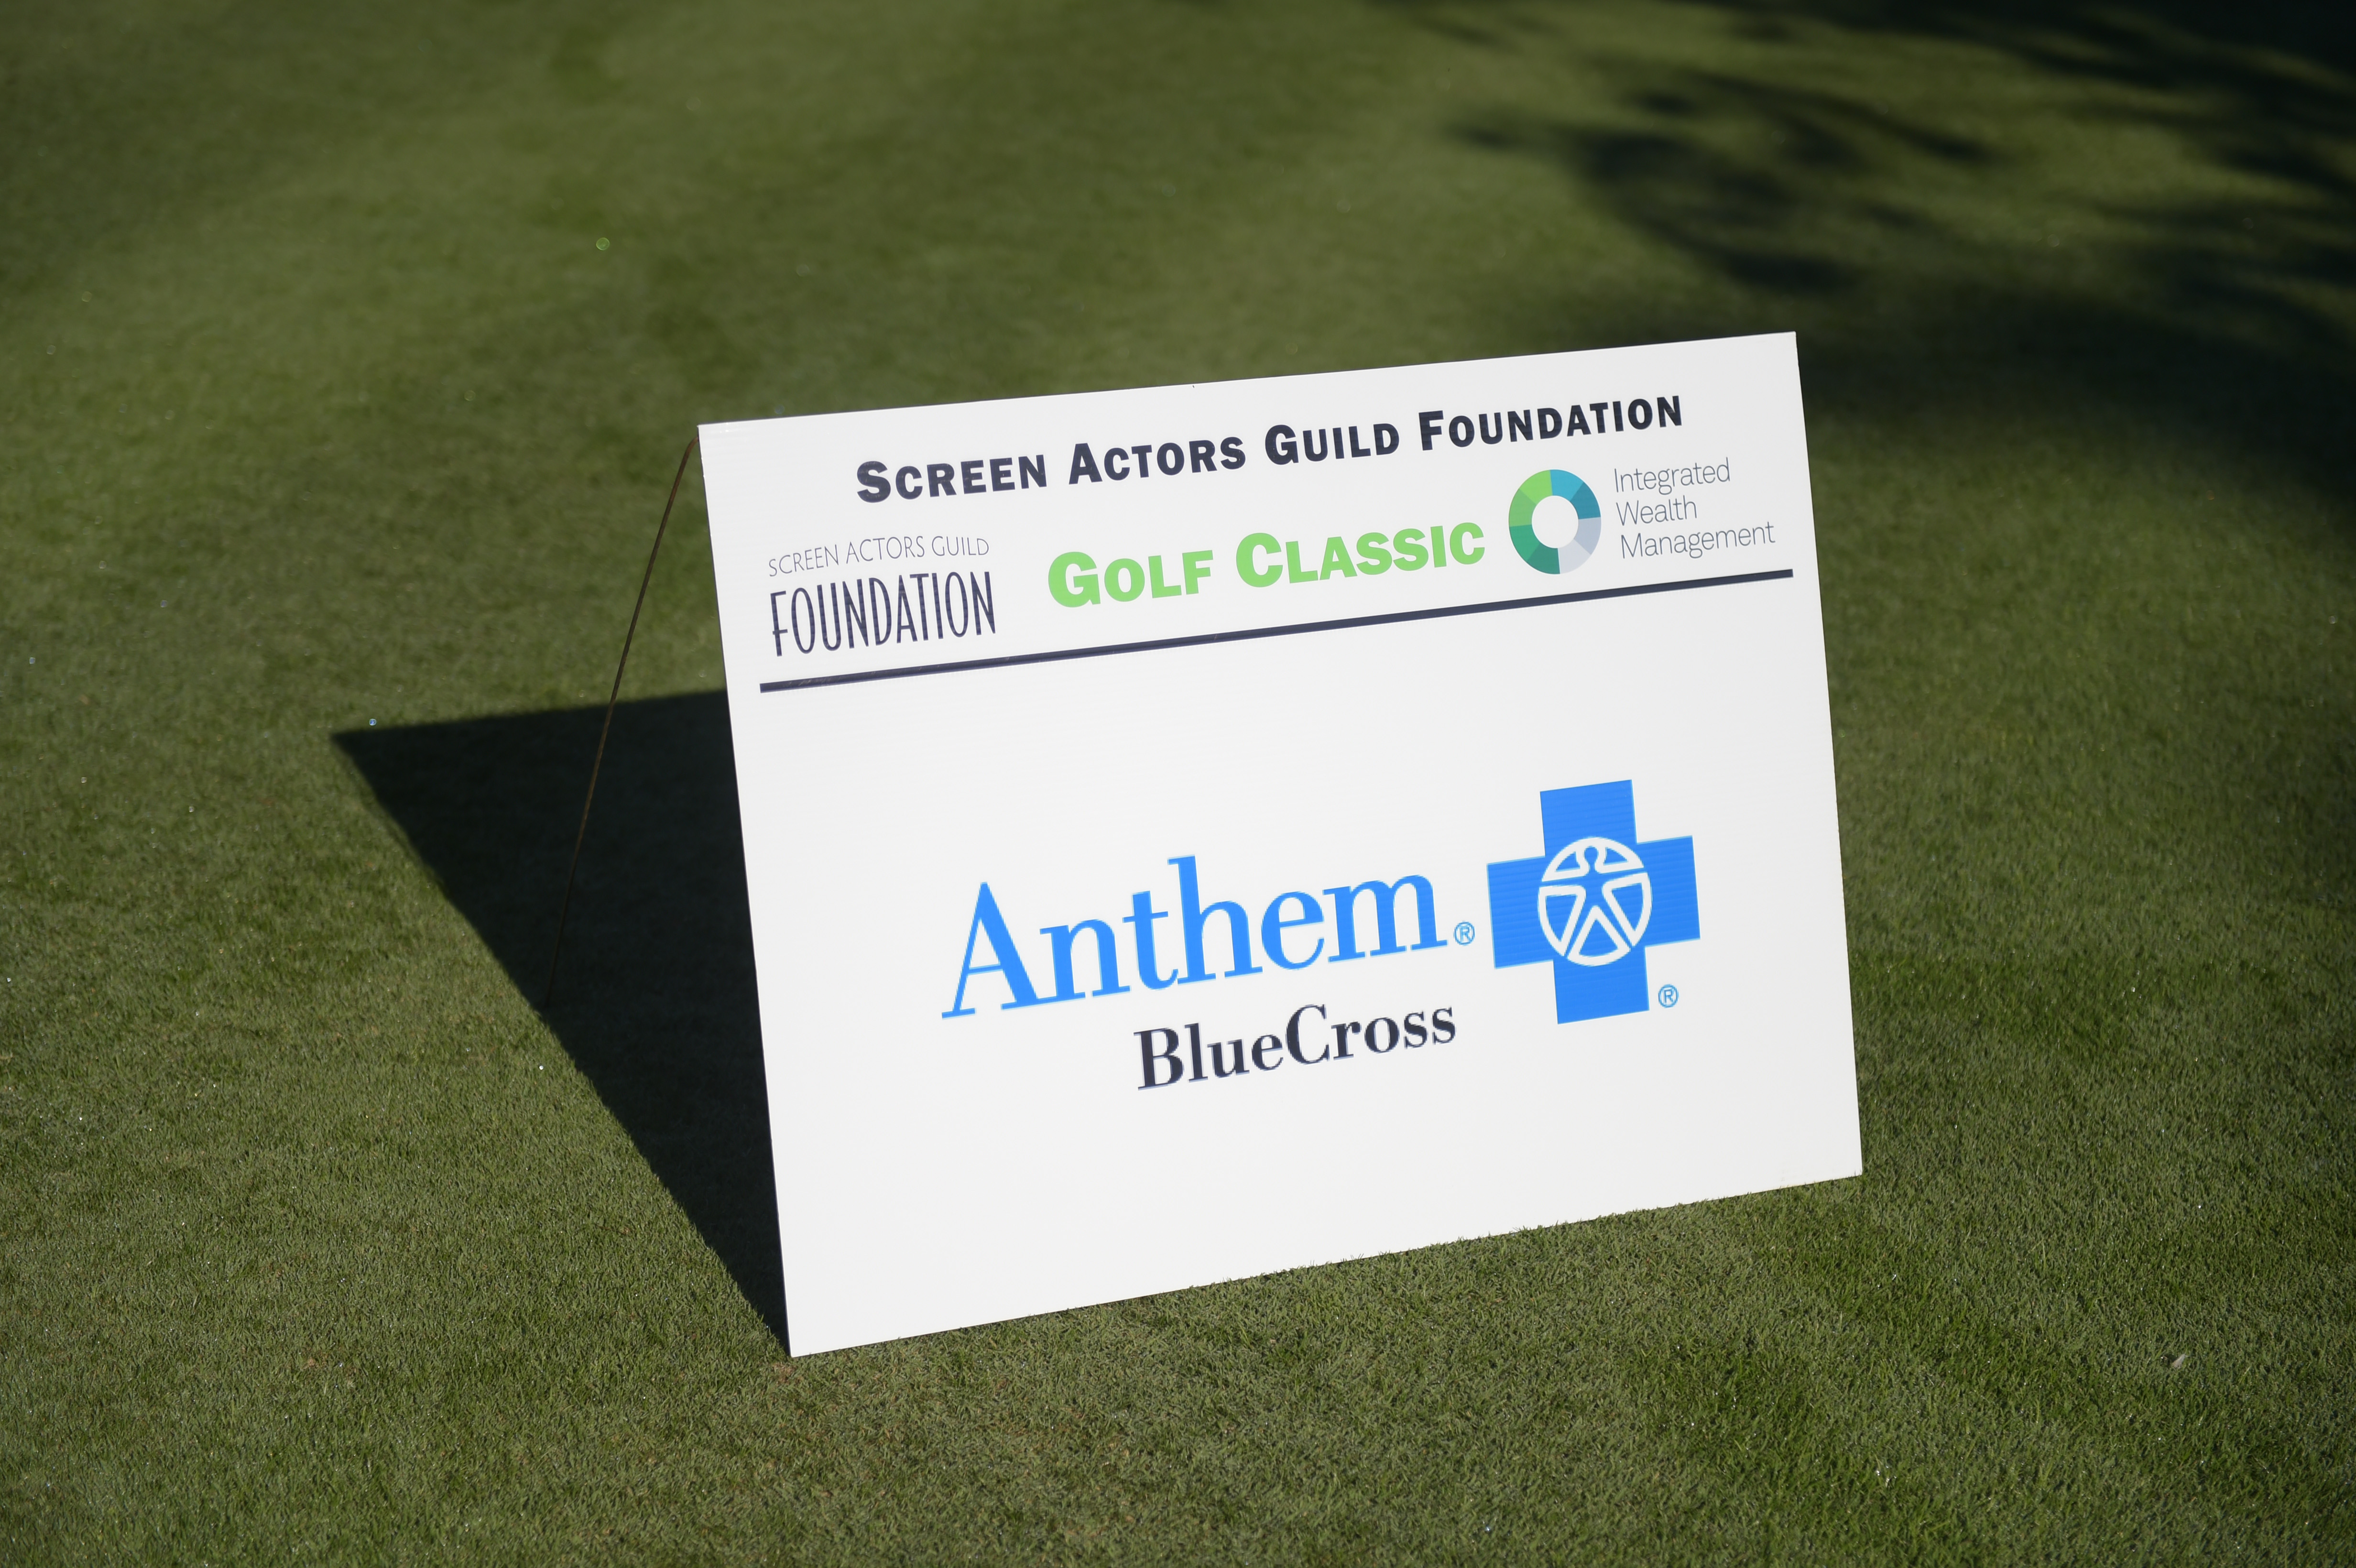 Anthem Blue Cross sponsors The Screen Actors Guild Foundation's 6th Annual Los Angeles Golf Classic. (Photo by Jason Kempin/Getty Images for The Screen Actors Guild Foundation)